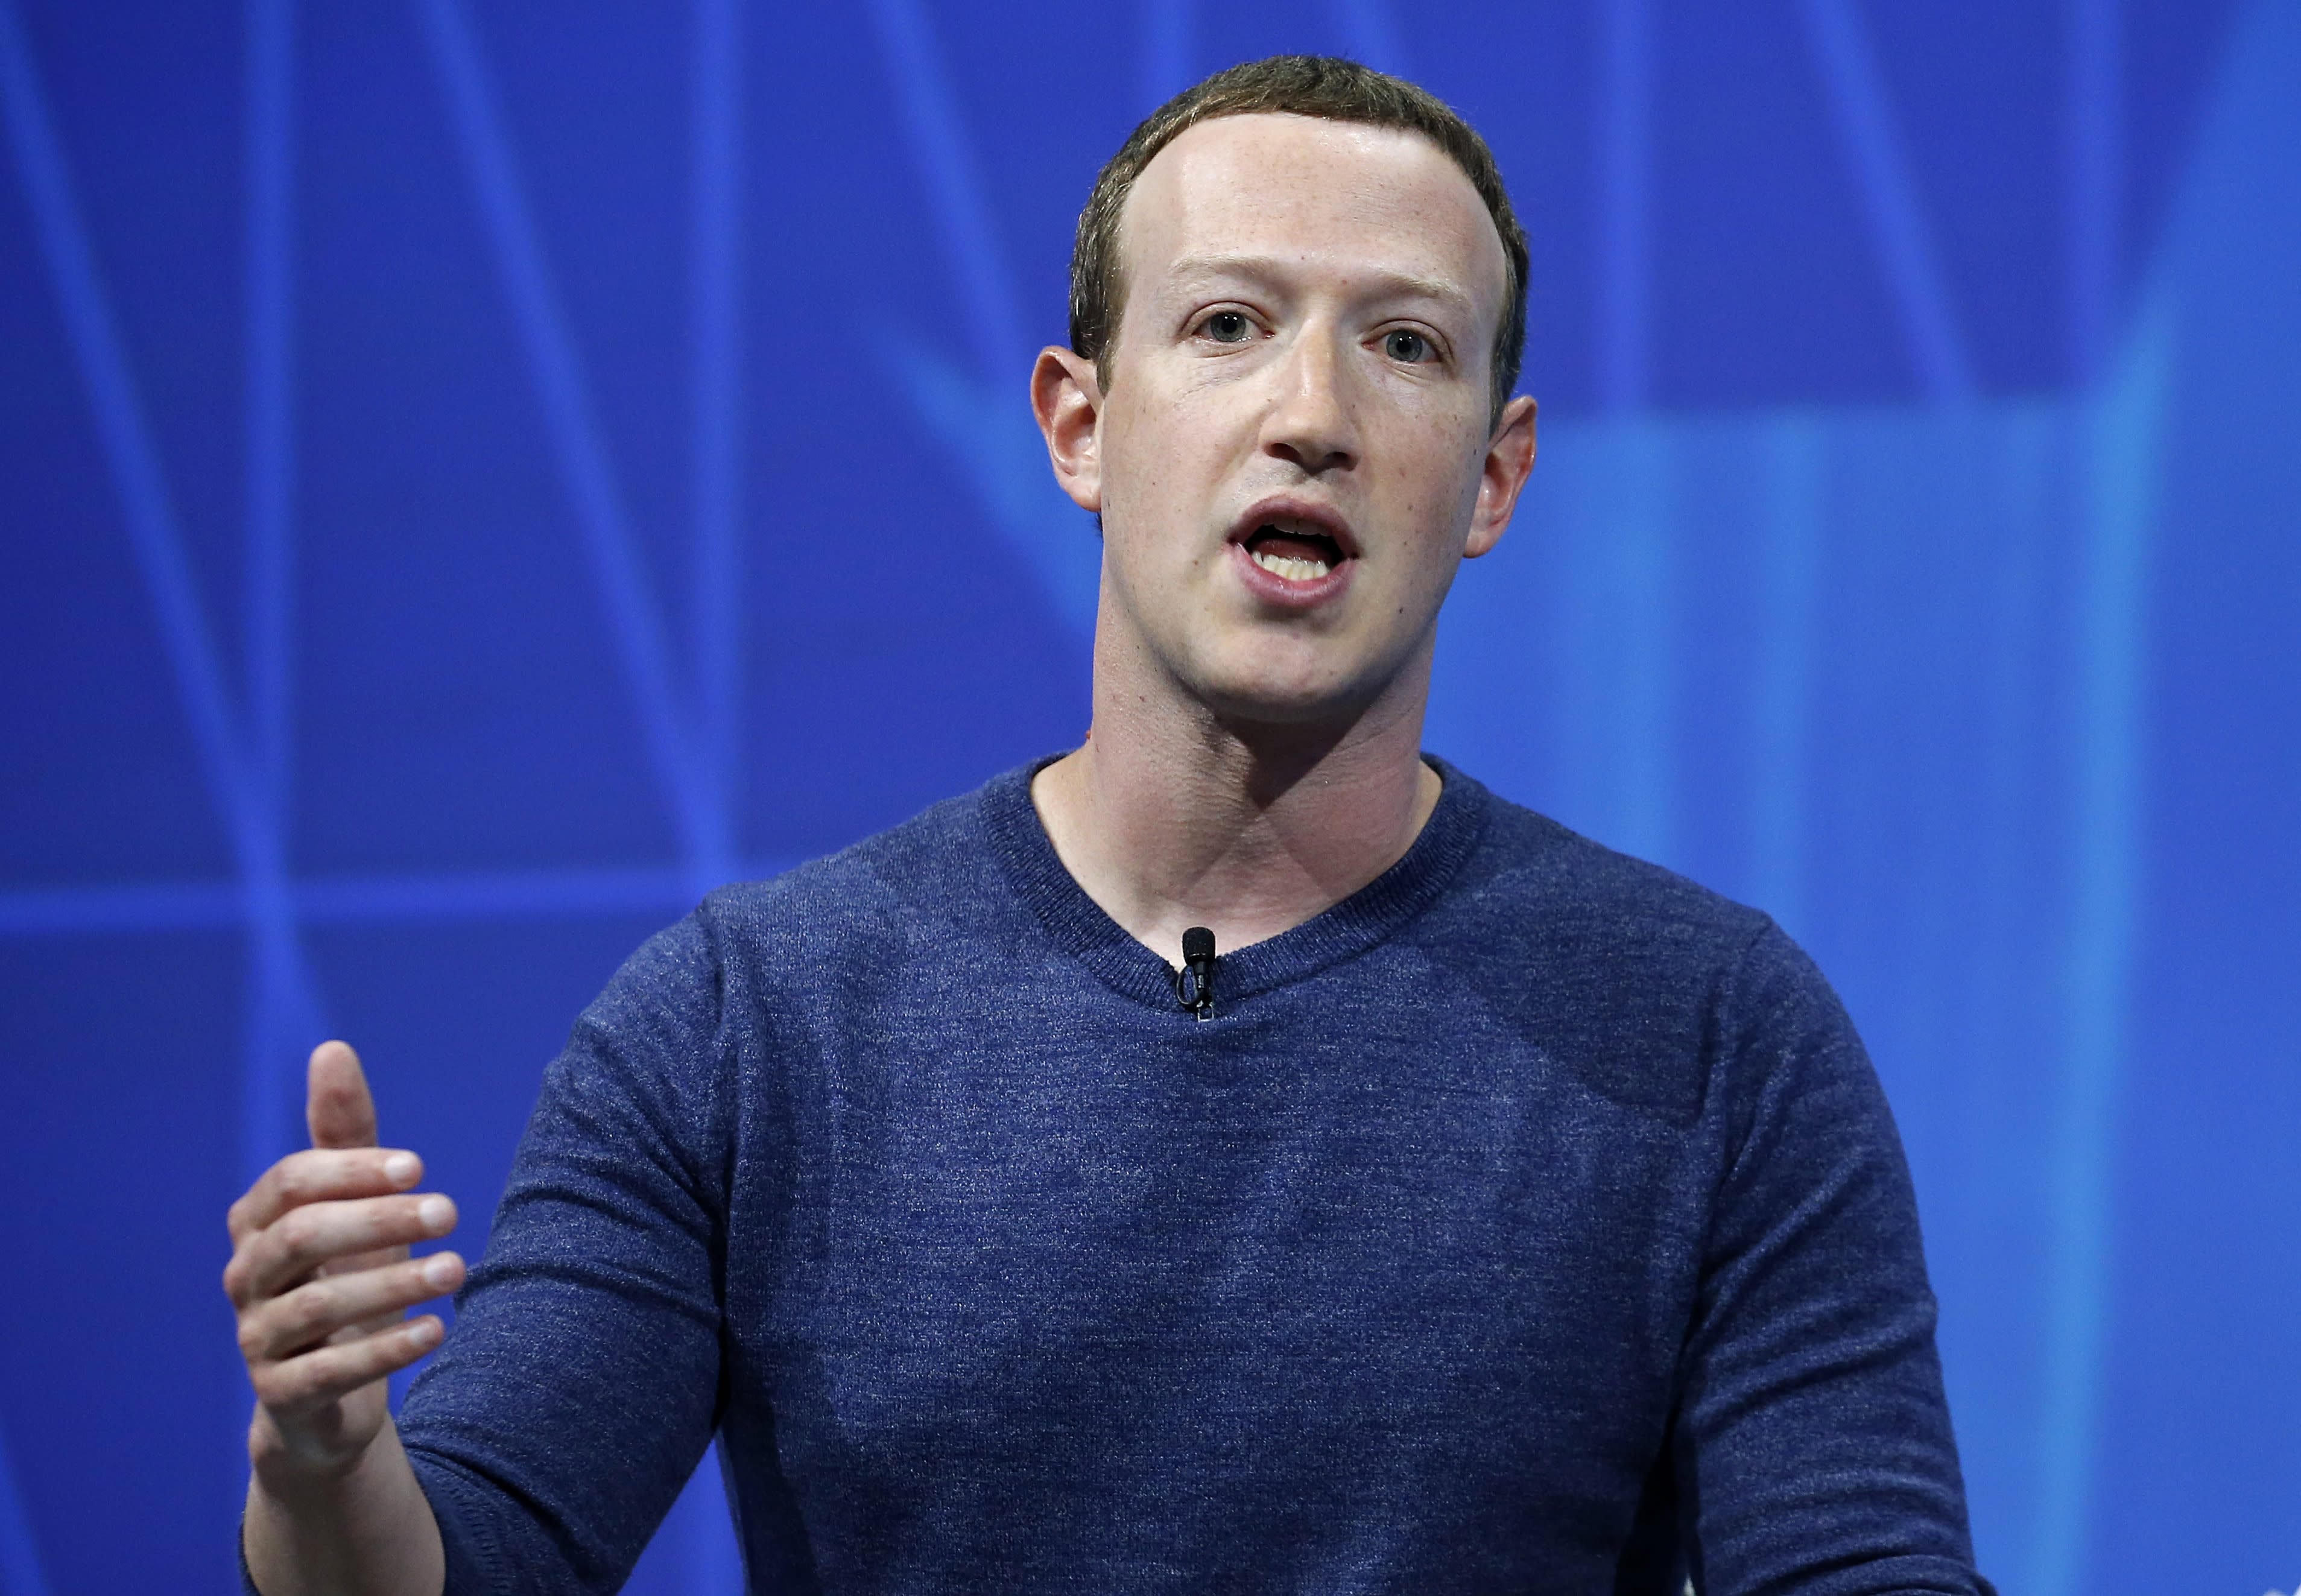 Facebook's Stock Plummets As User Growth and Revenue Miss Expectations